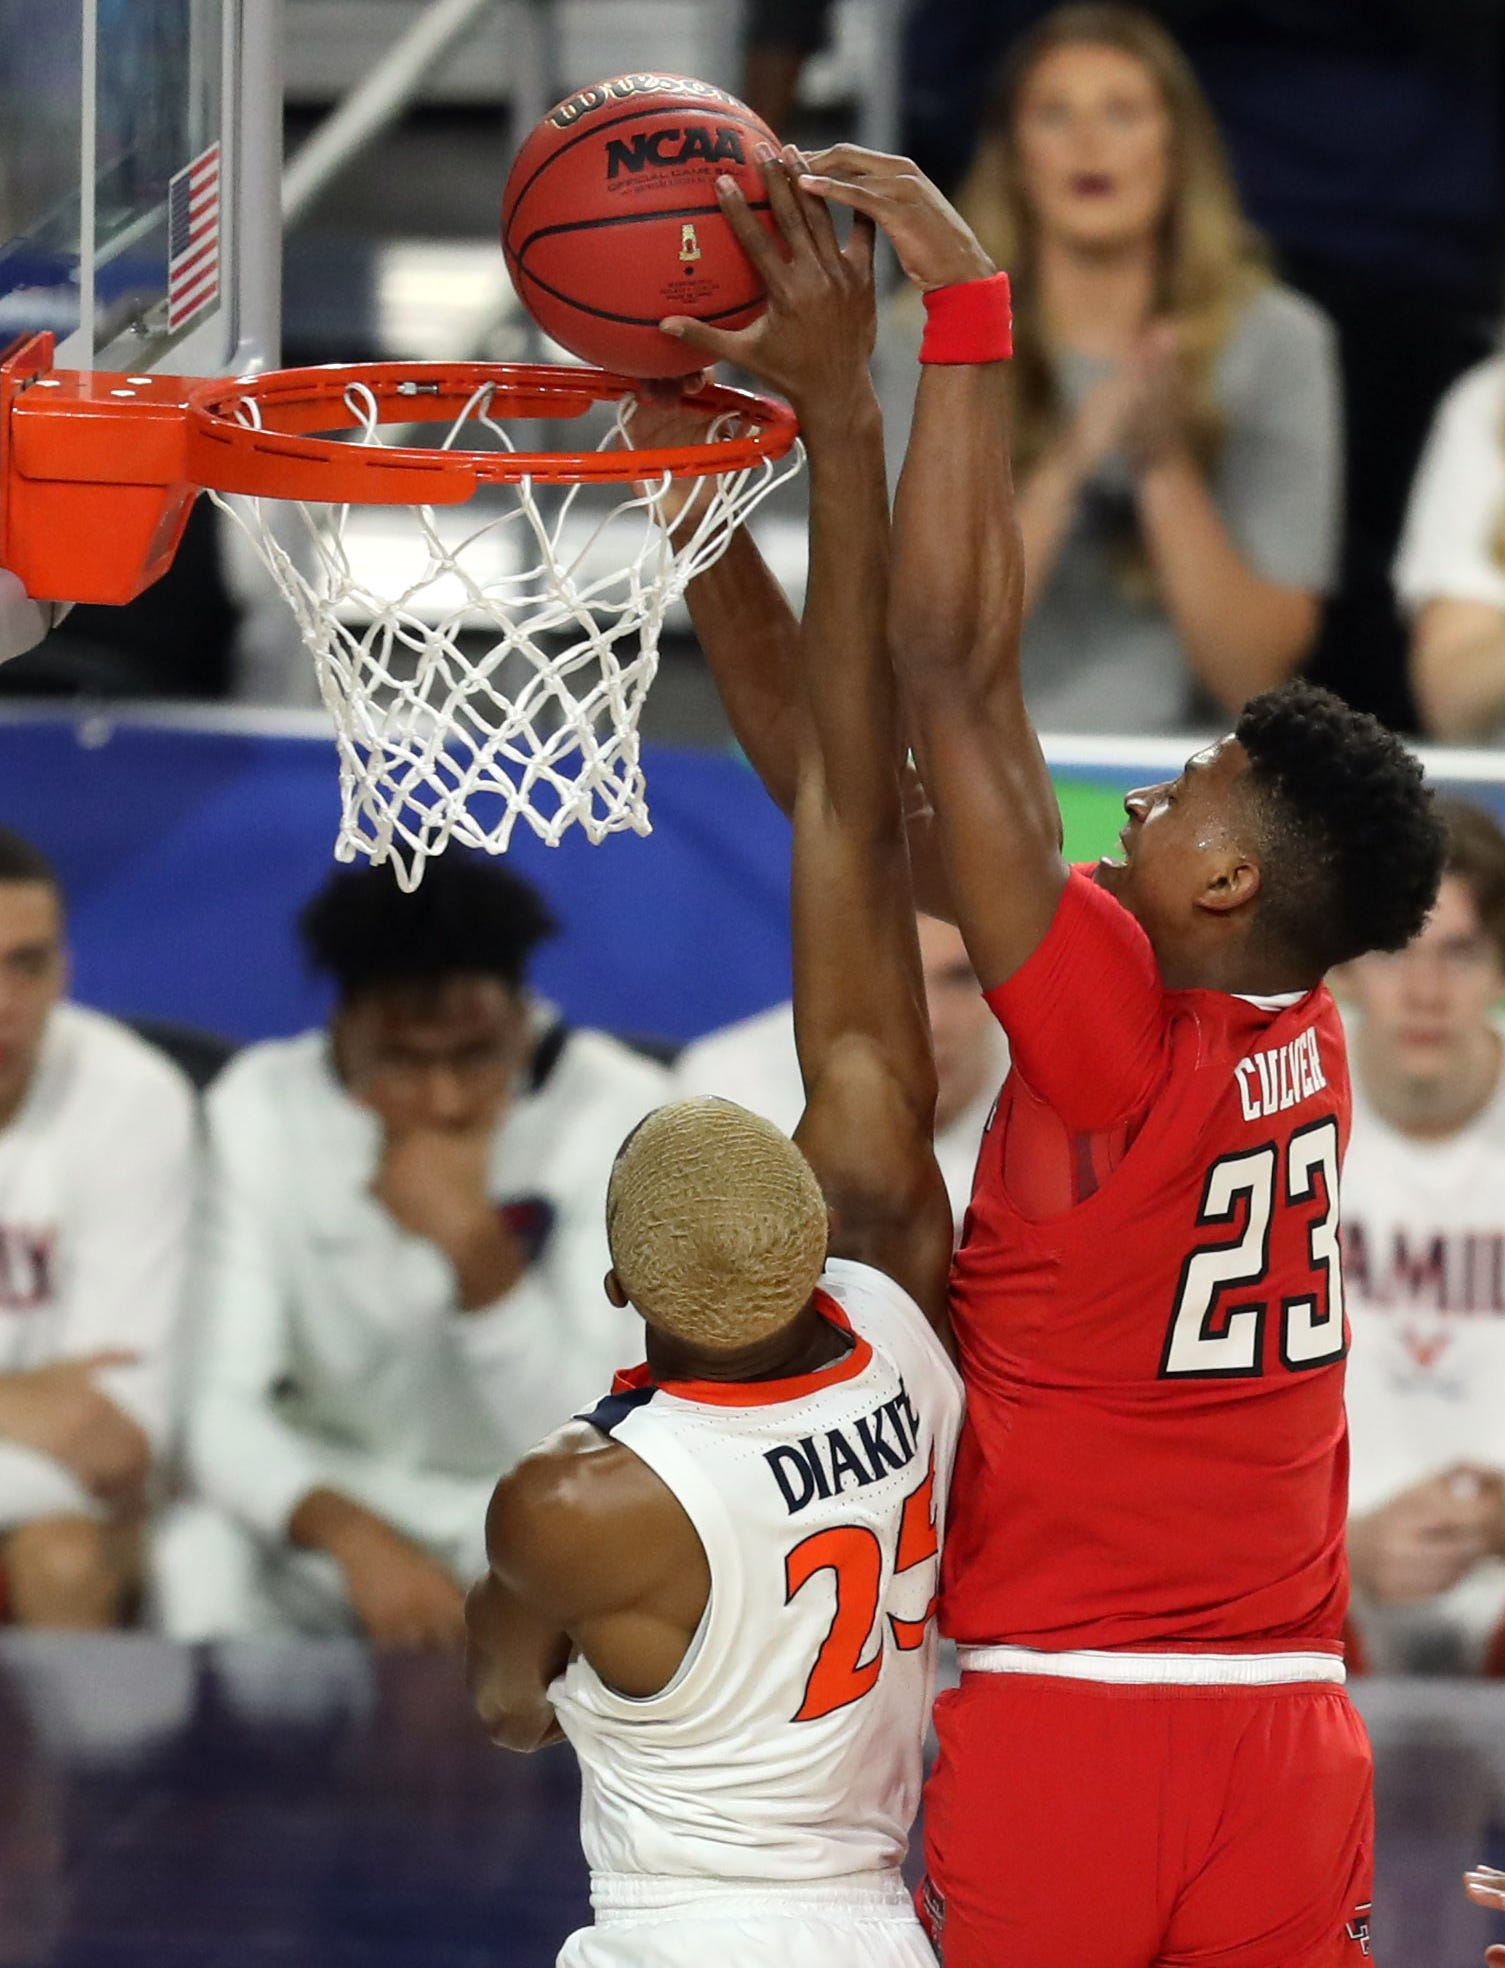 Virginia's Mamadi Diakite (25) blocks the shot of Texas Tech's Jarrett Culver during the first half in the championship game.